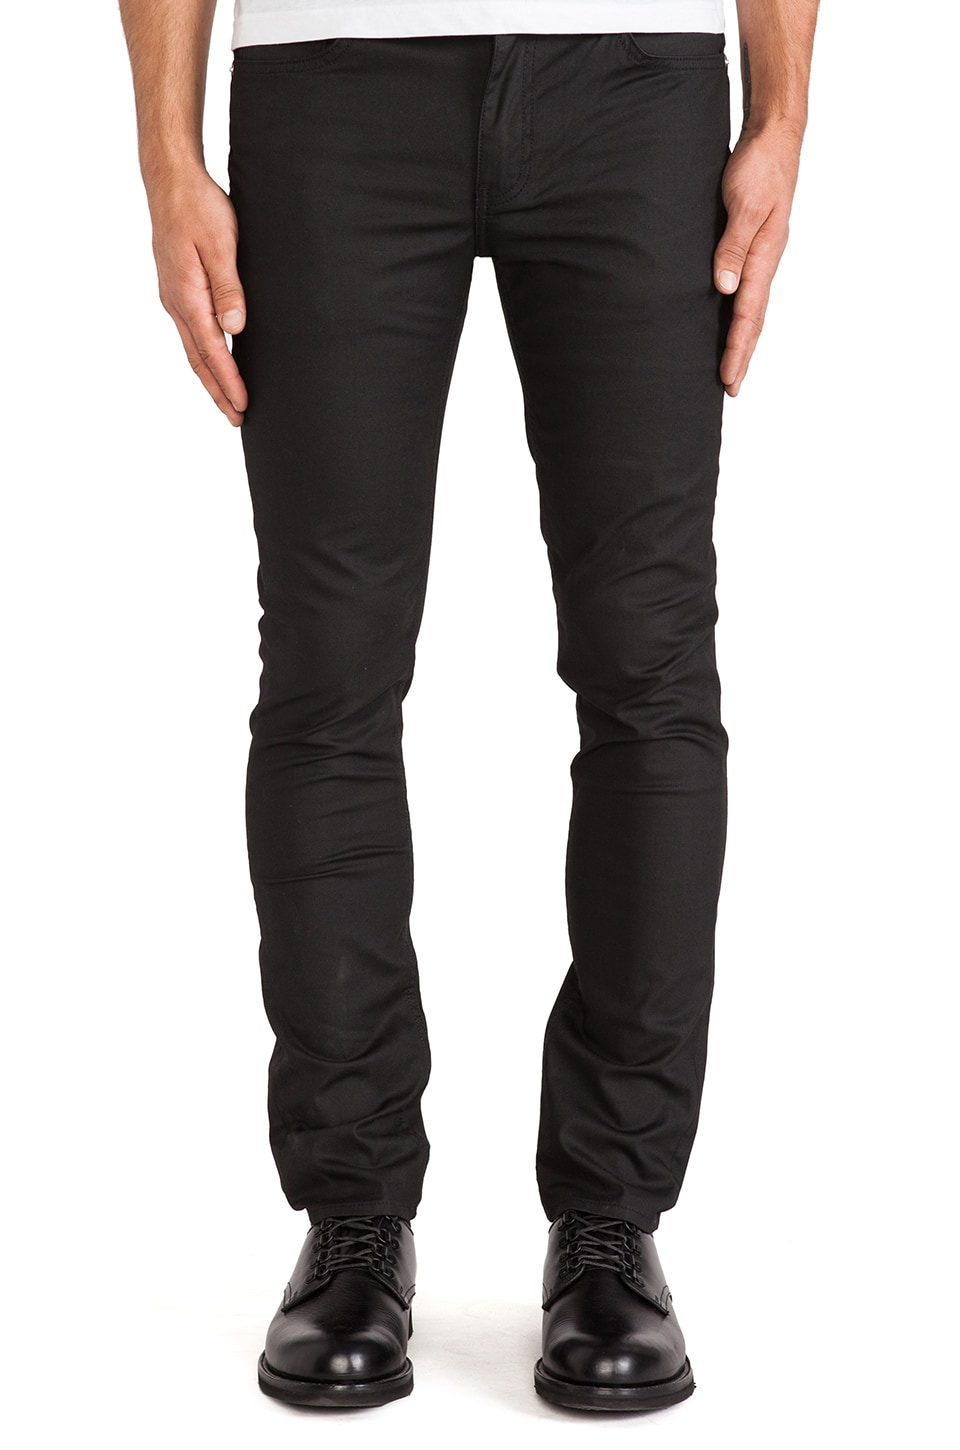 BLK DNM Jeans 25 in Orchard Black